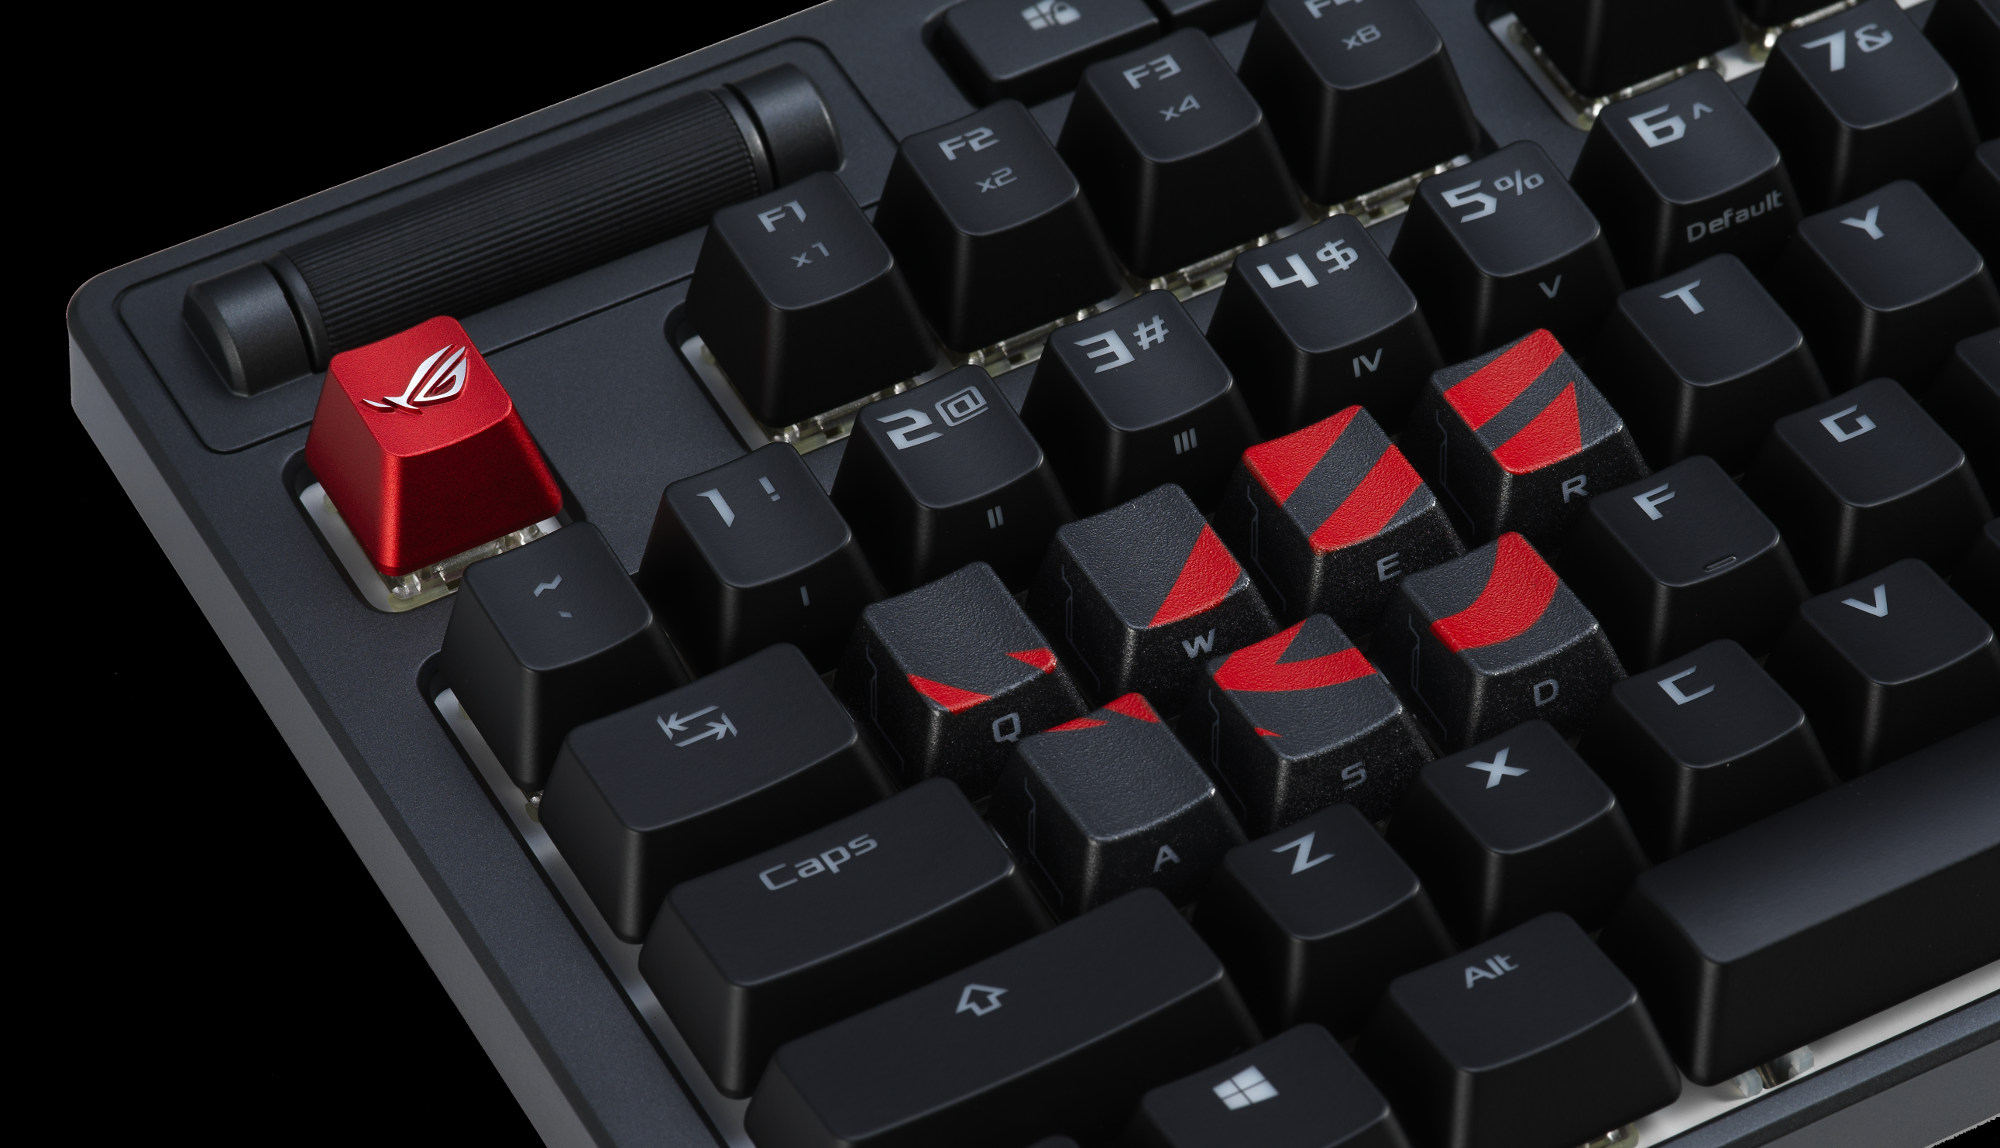 The ROG keycap kit is designed for diehard members of the Republic